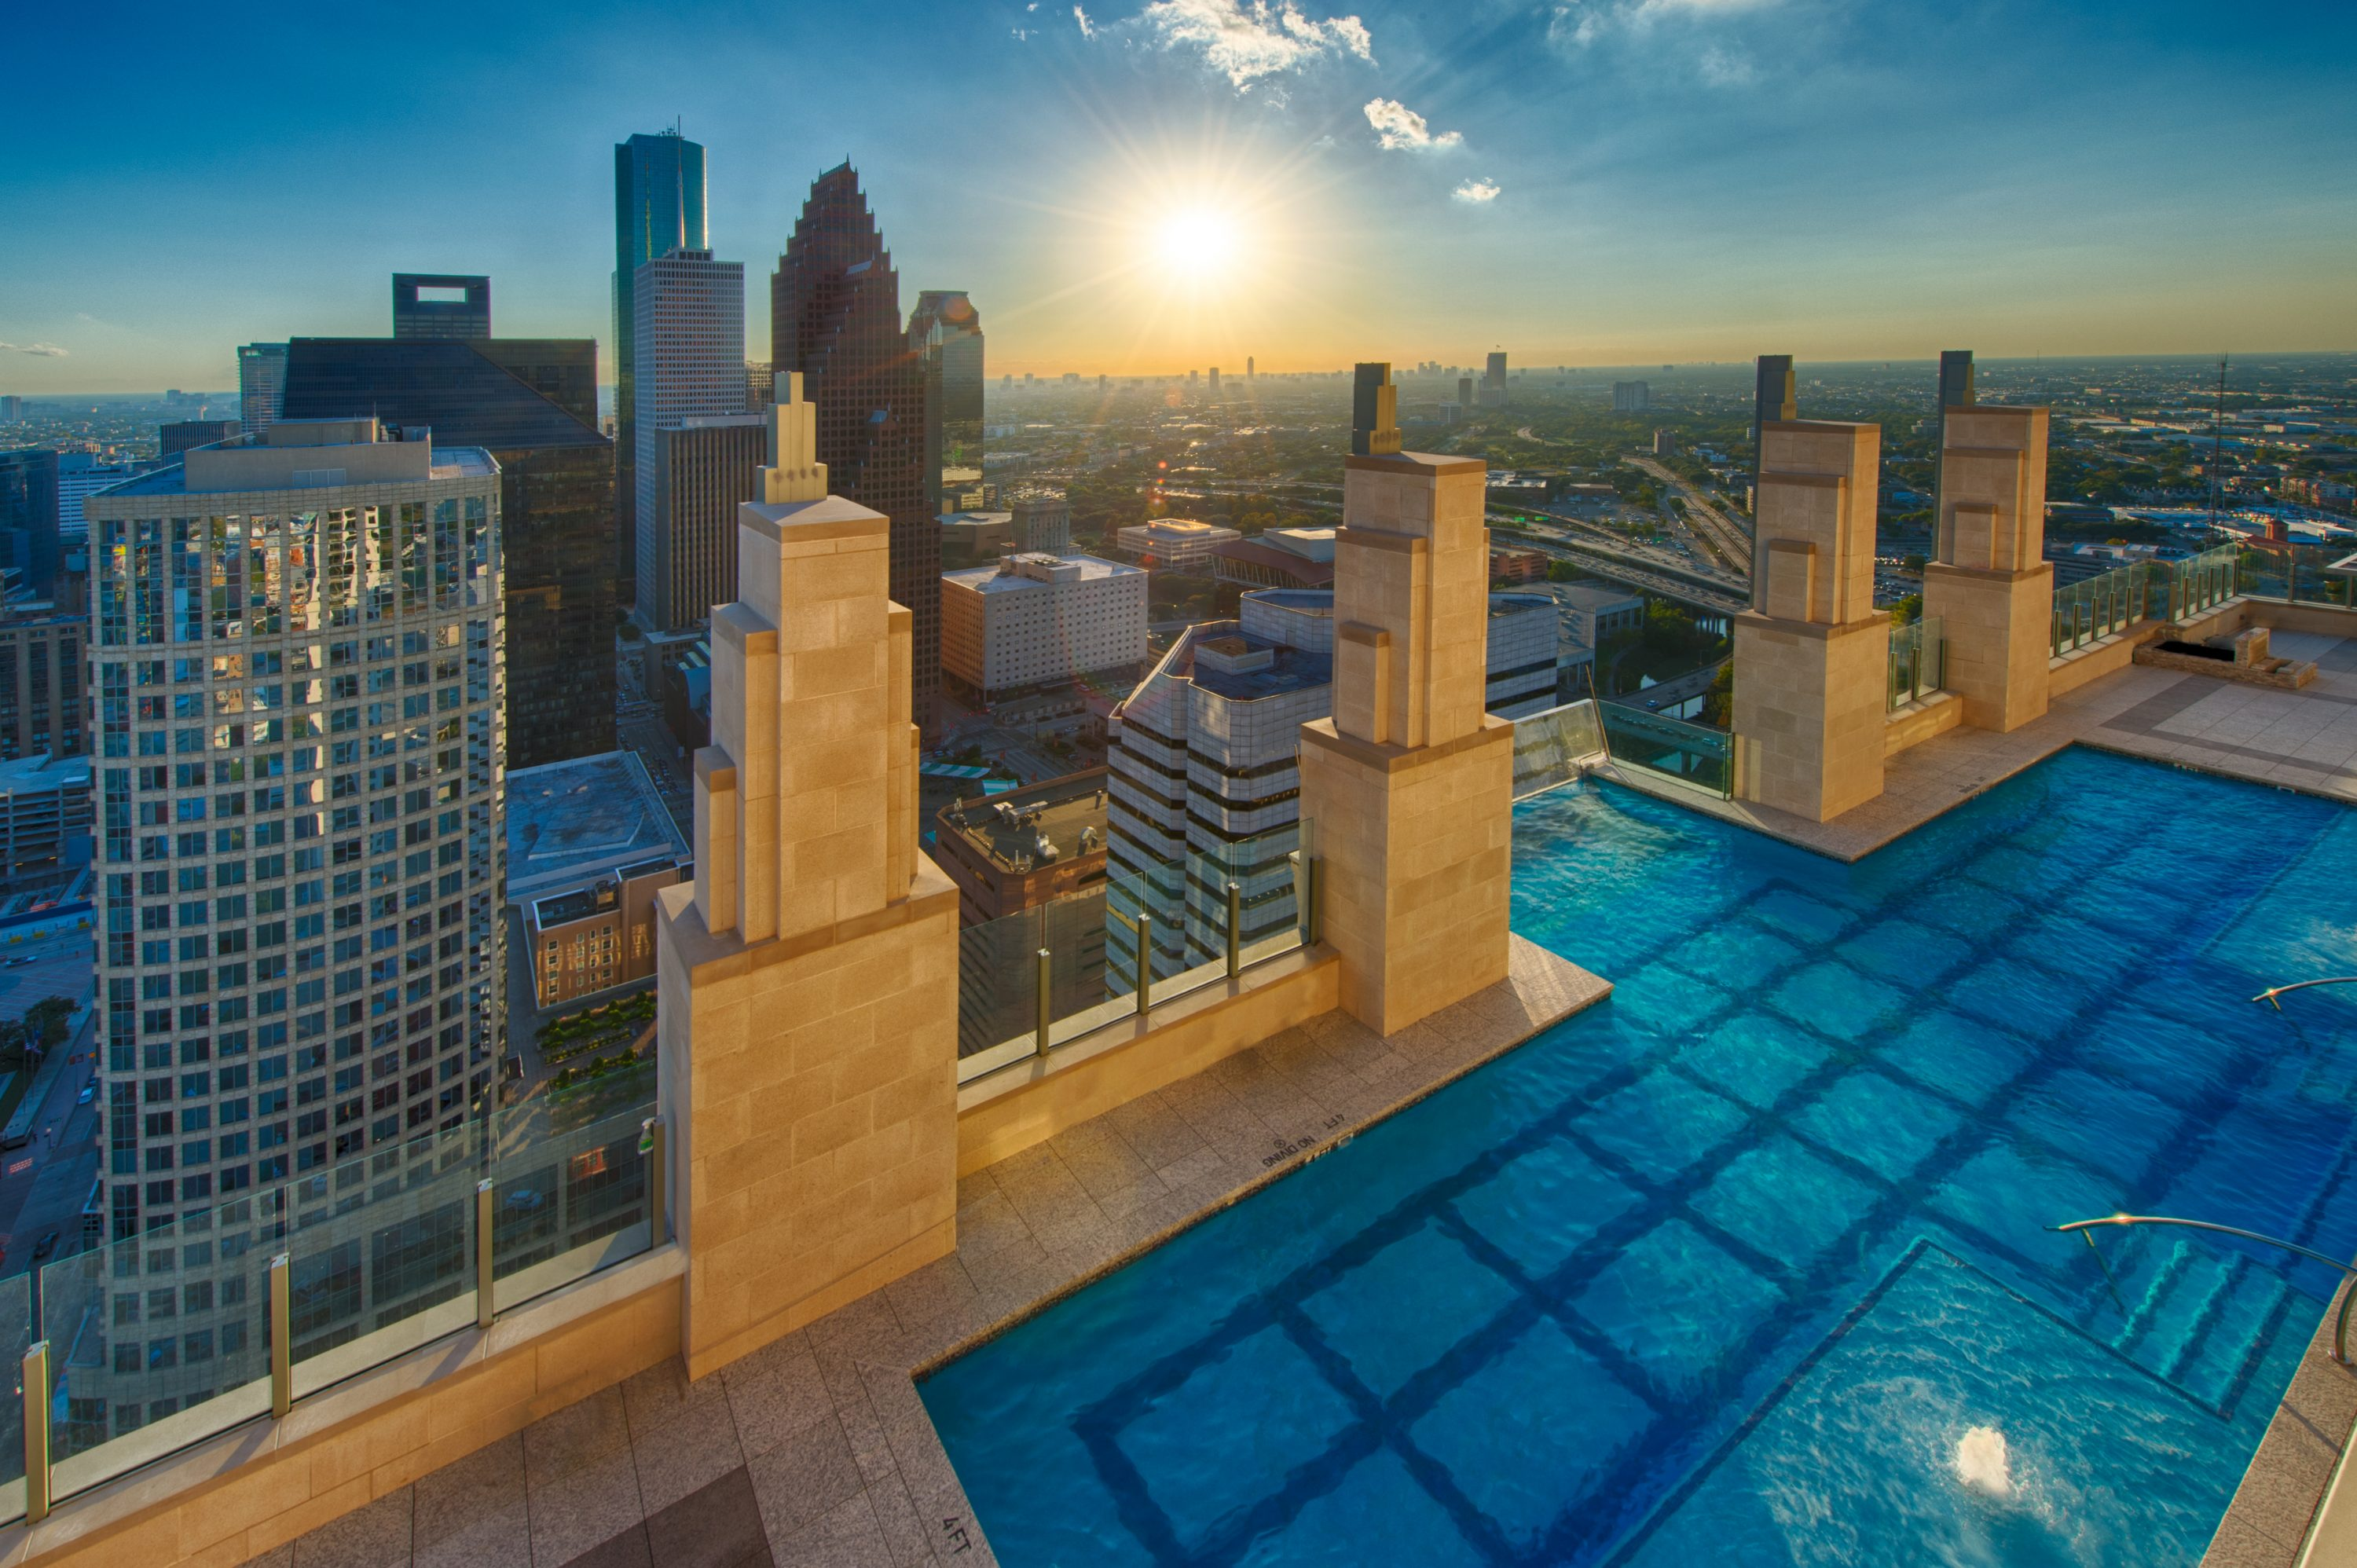 Houston 39 S Downtown High Rise Guide Everything You Need To Know About Living Large And Up High